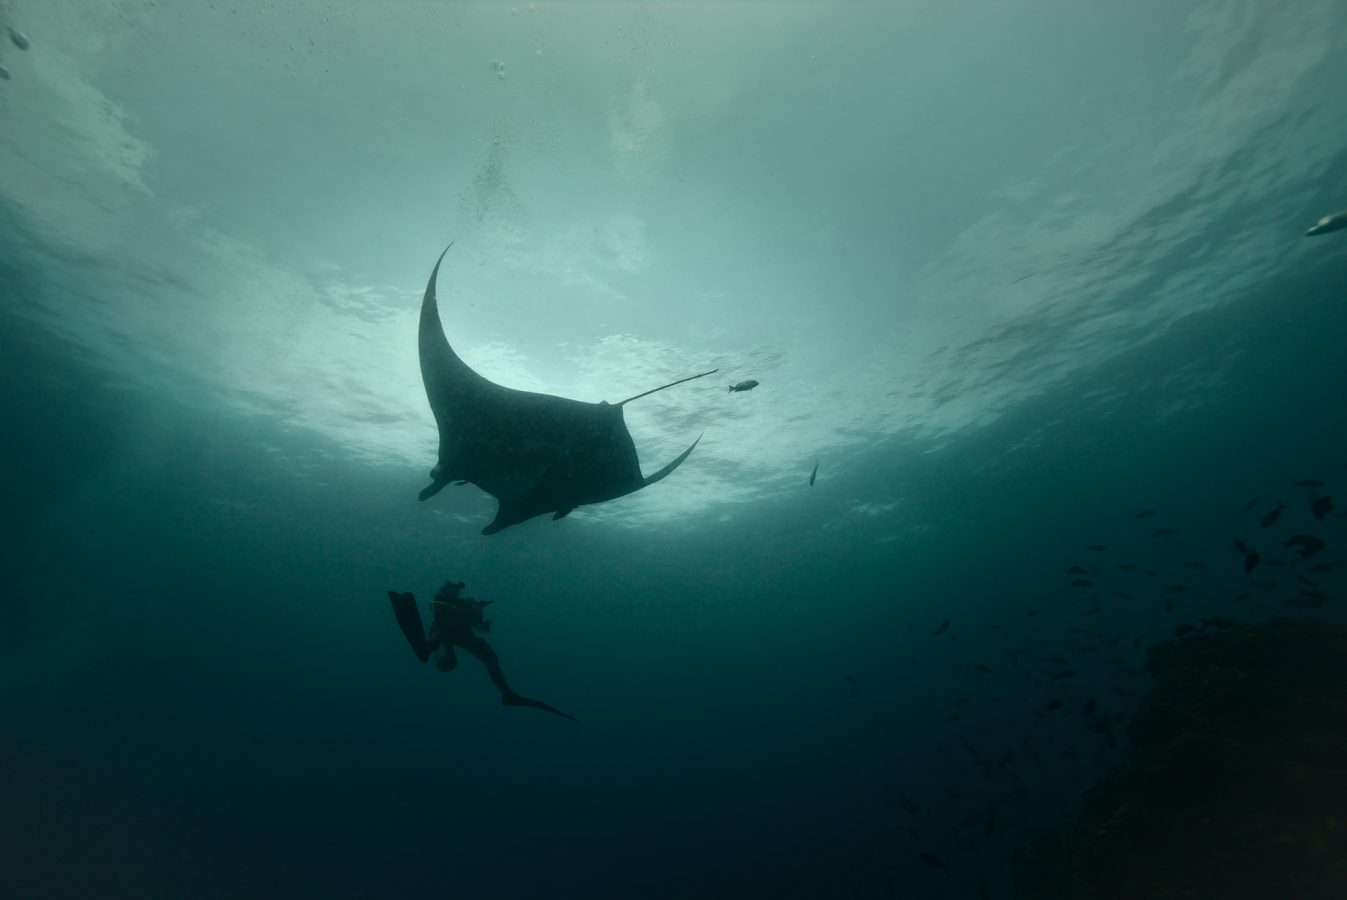 Diver underwater with manta ray